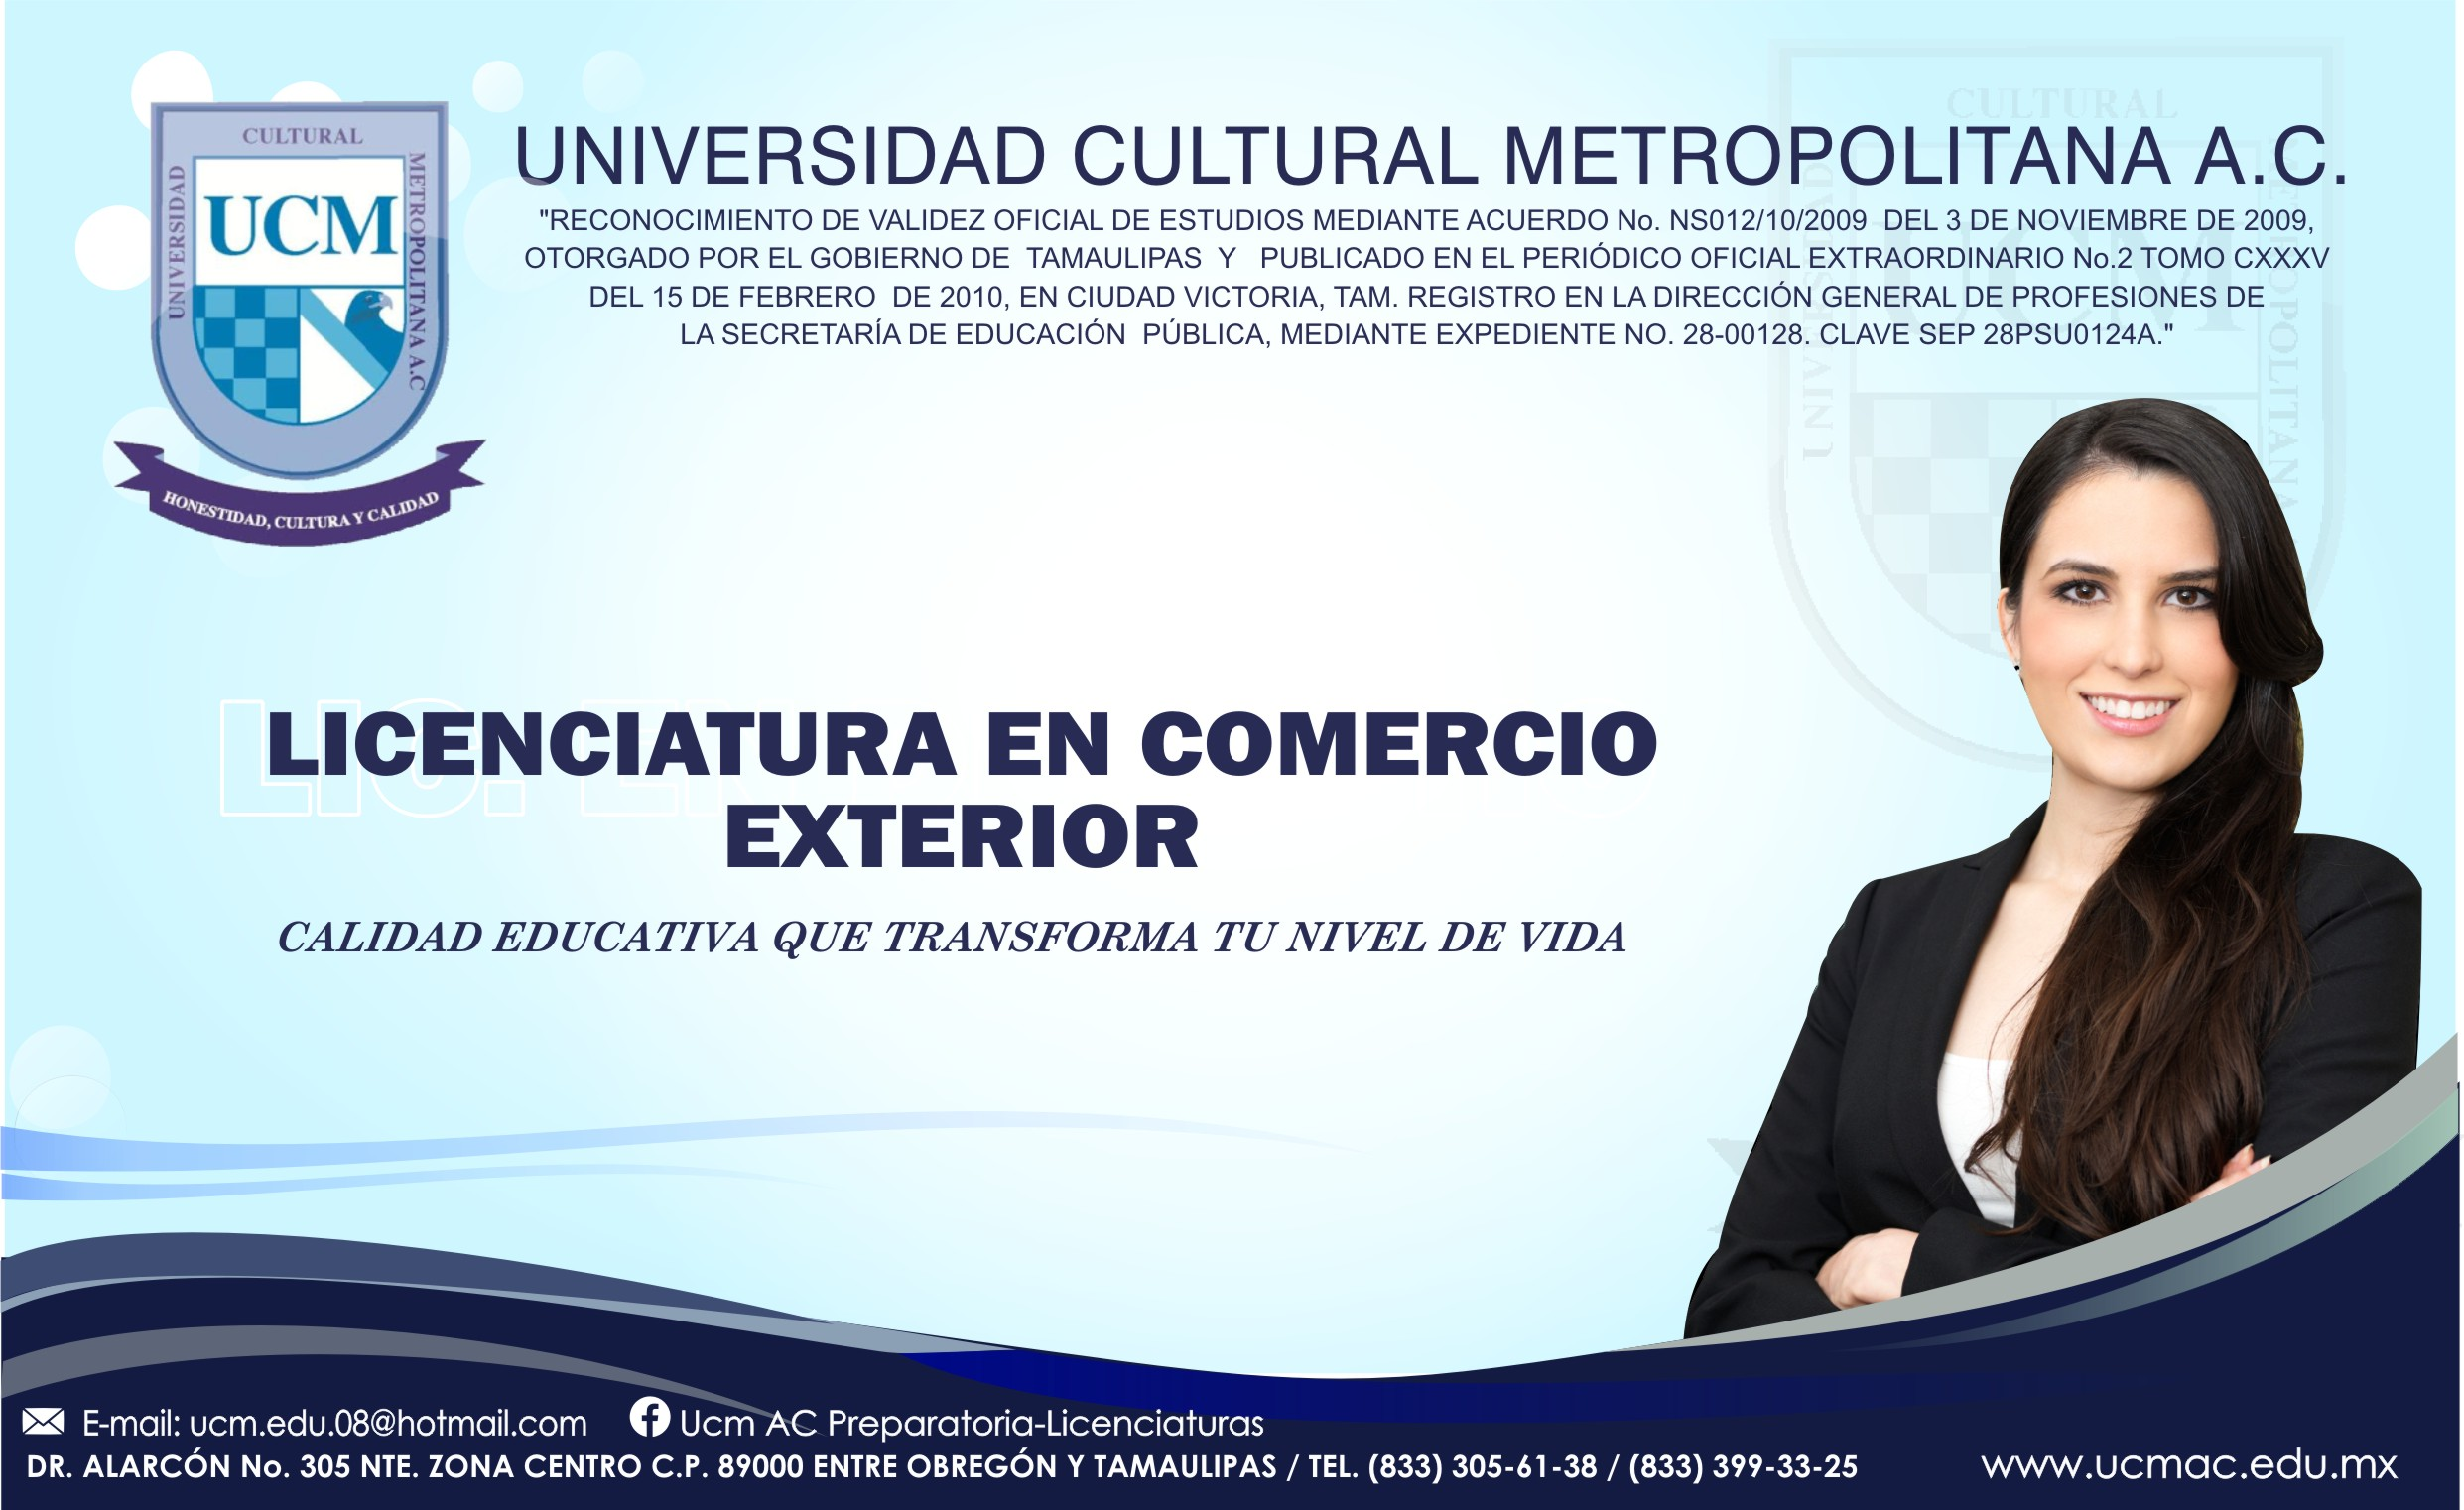 Universidad Cultural Metropolitana  Honestidad, Cultura Y. To Start A New Business Aluminum Work Benches. Village Parkway Christian School. Hair Colors For Fall 2013 Compare Uk Car Hire. Websites To Make Photo Books. Hyundai Accent 2004 Manual Kee Password Safe. Bookkeeping Small Business Spiriva Vs Advair. Frontier Investor Relations Medigap Part D. Orthodontic Assistant Training